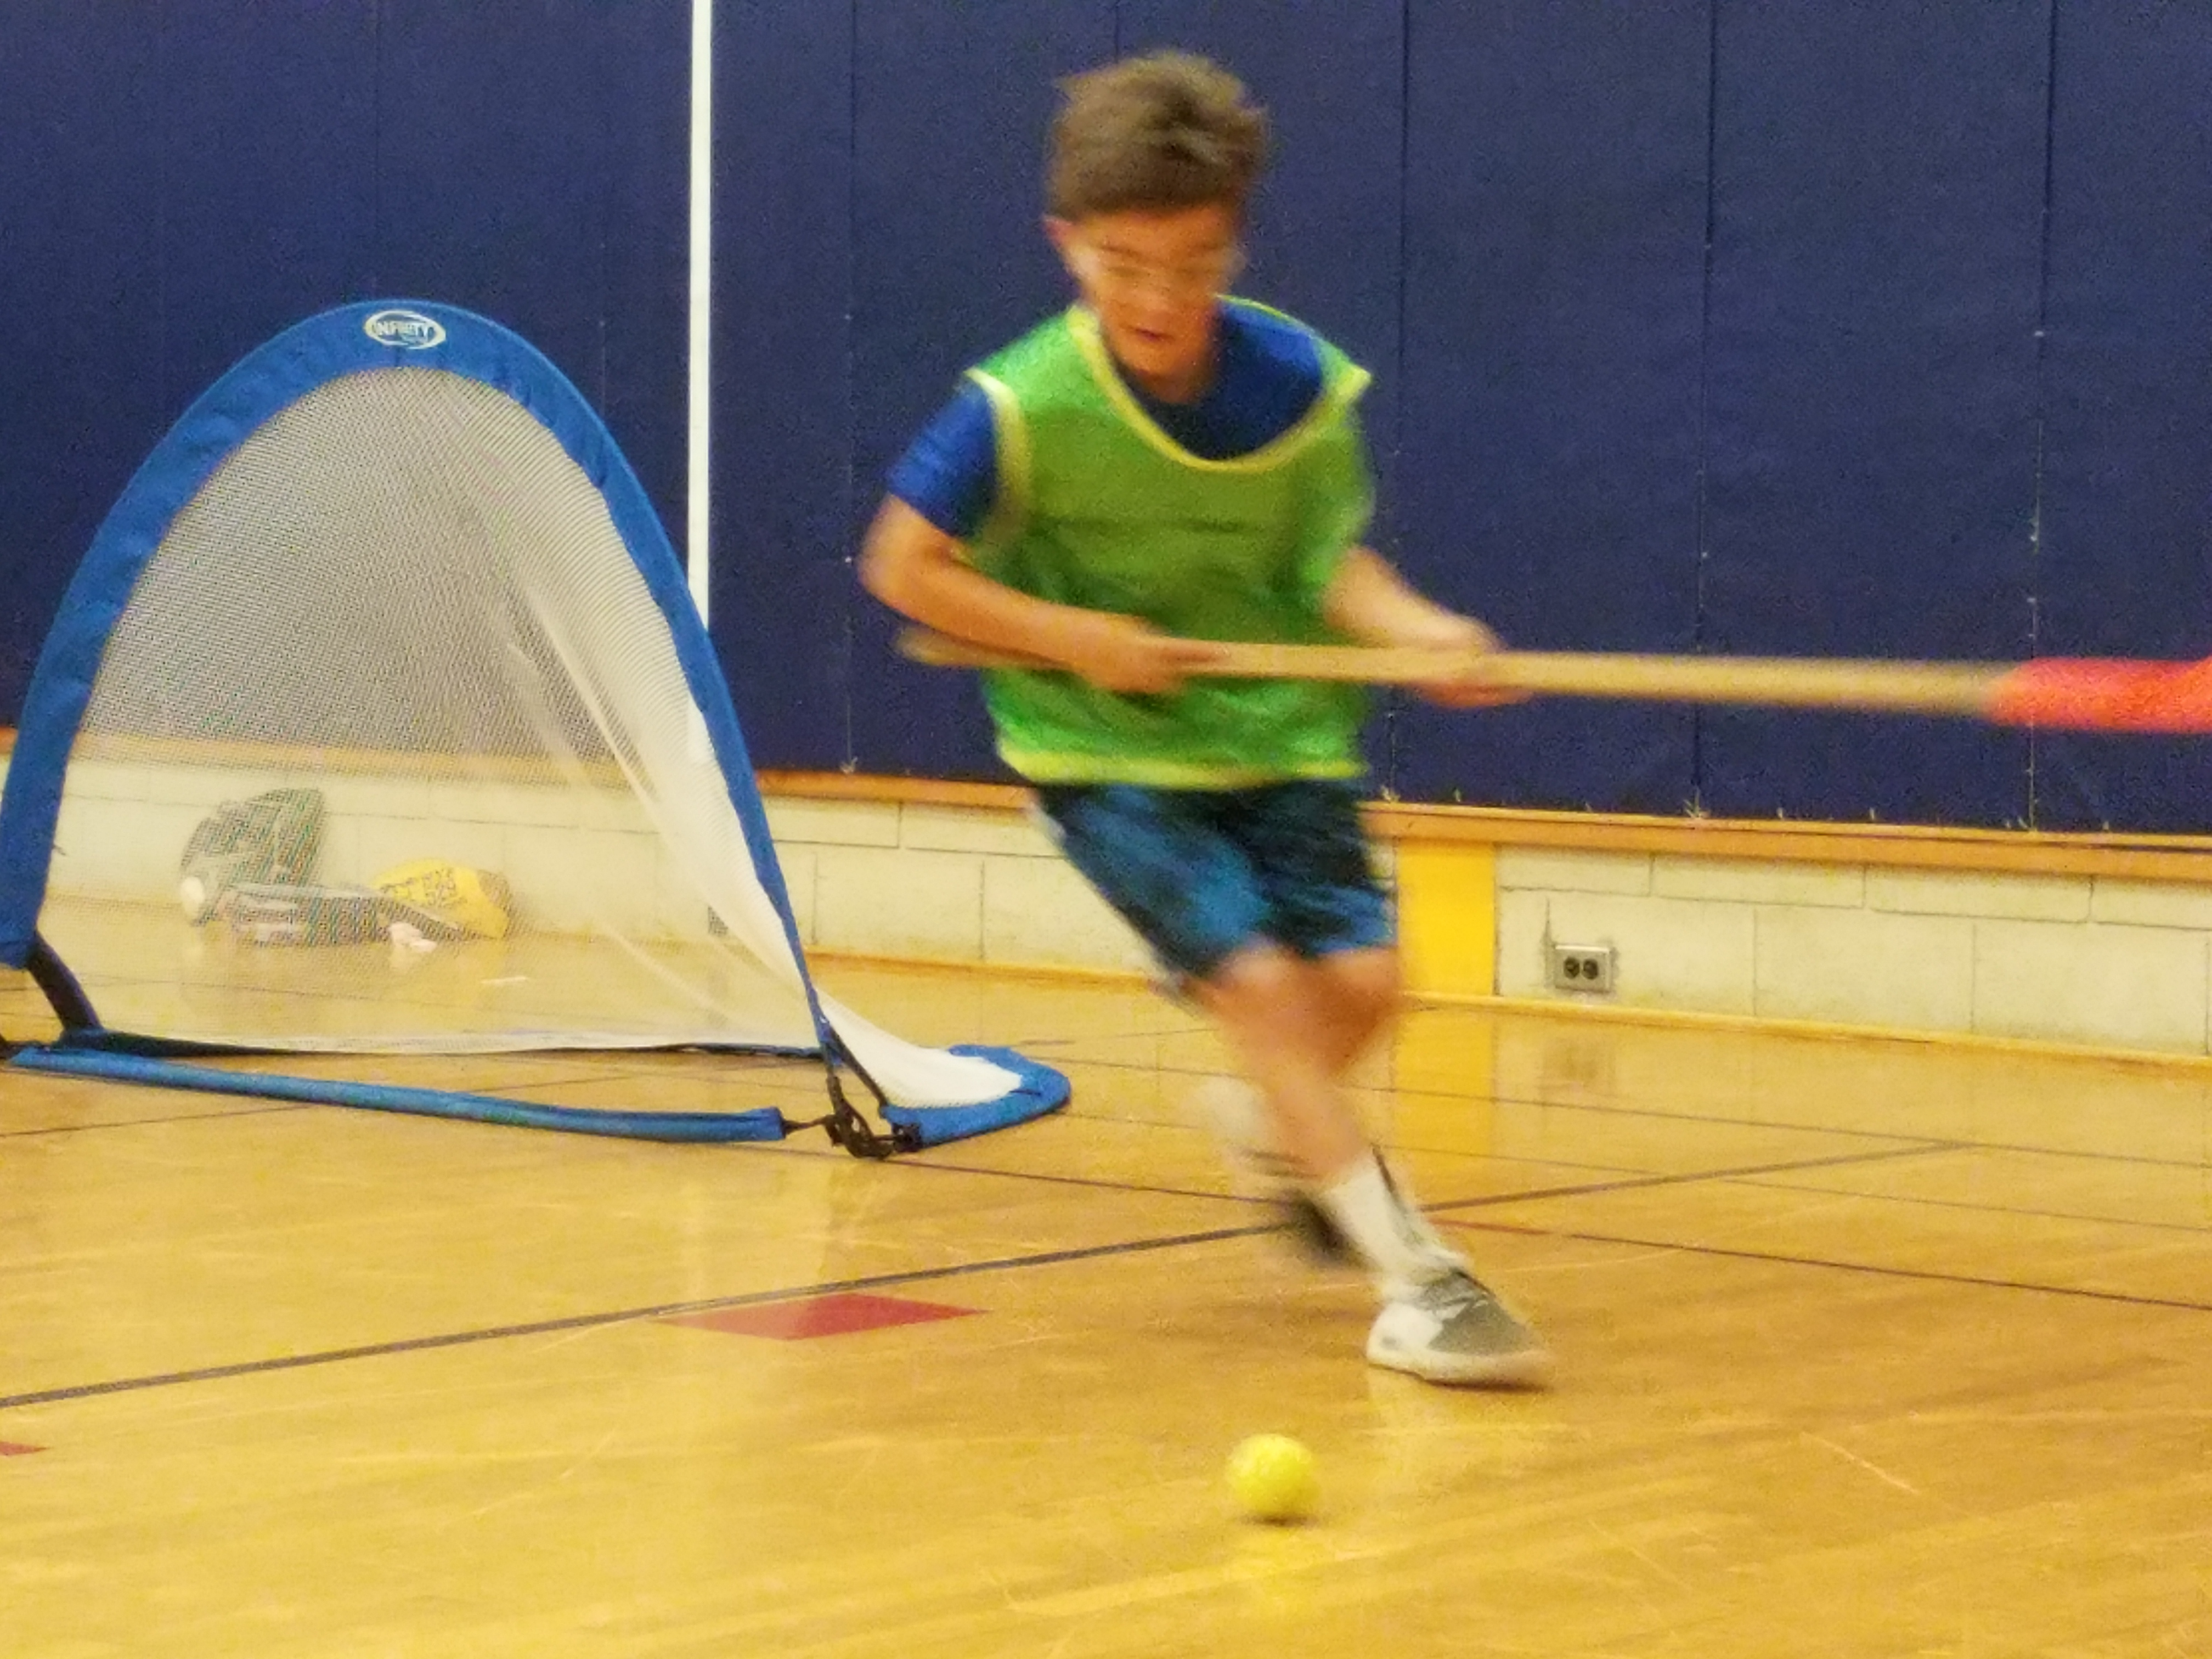 Orchard Park Recreation > Camps > Sports Camp Ages 5-12